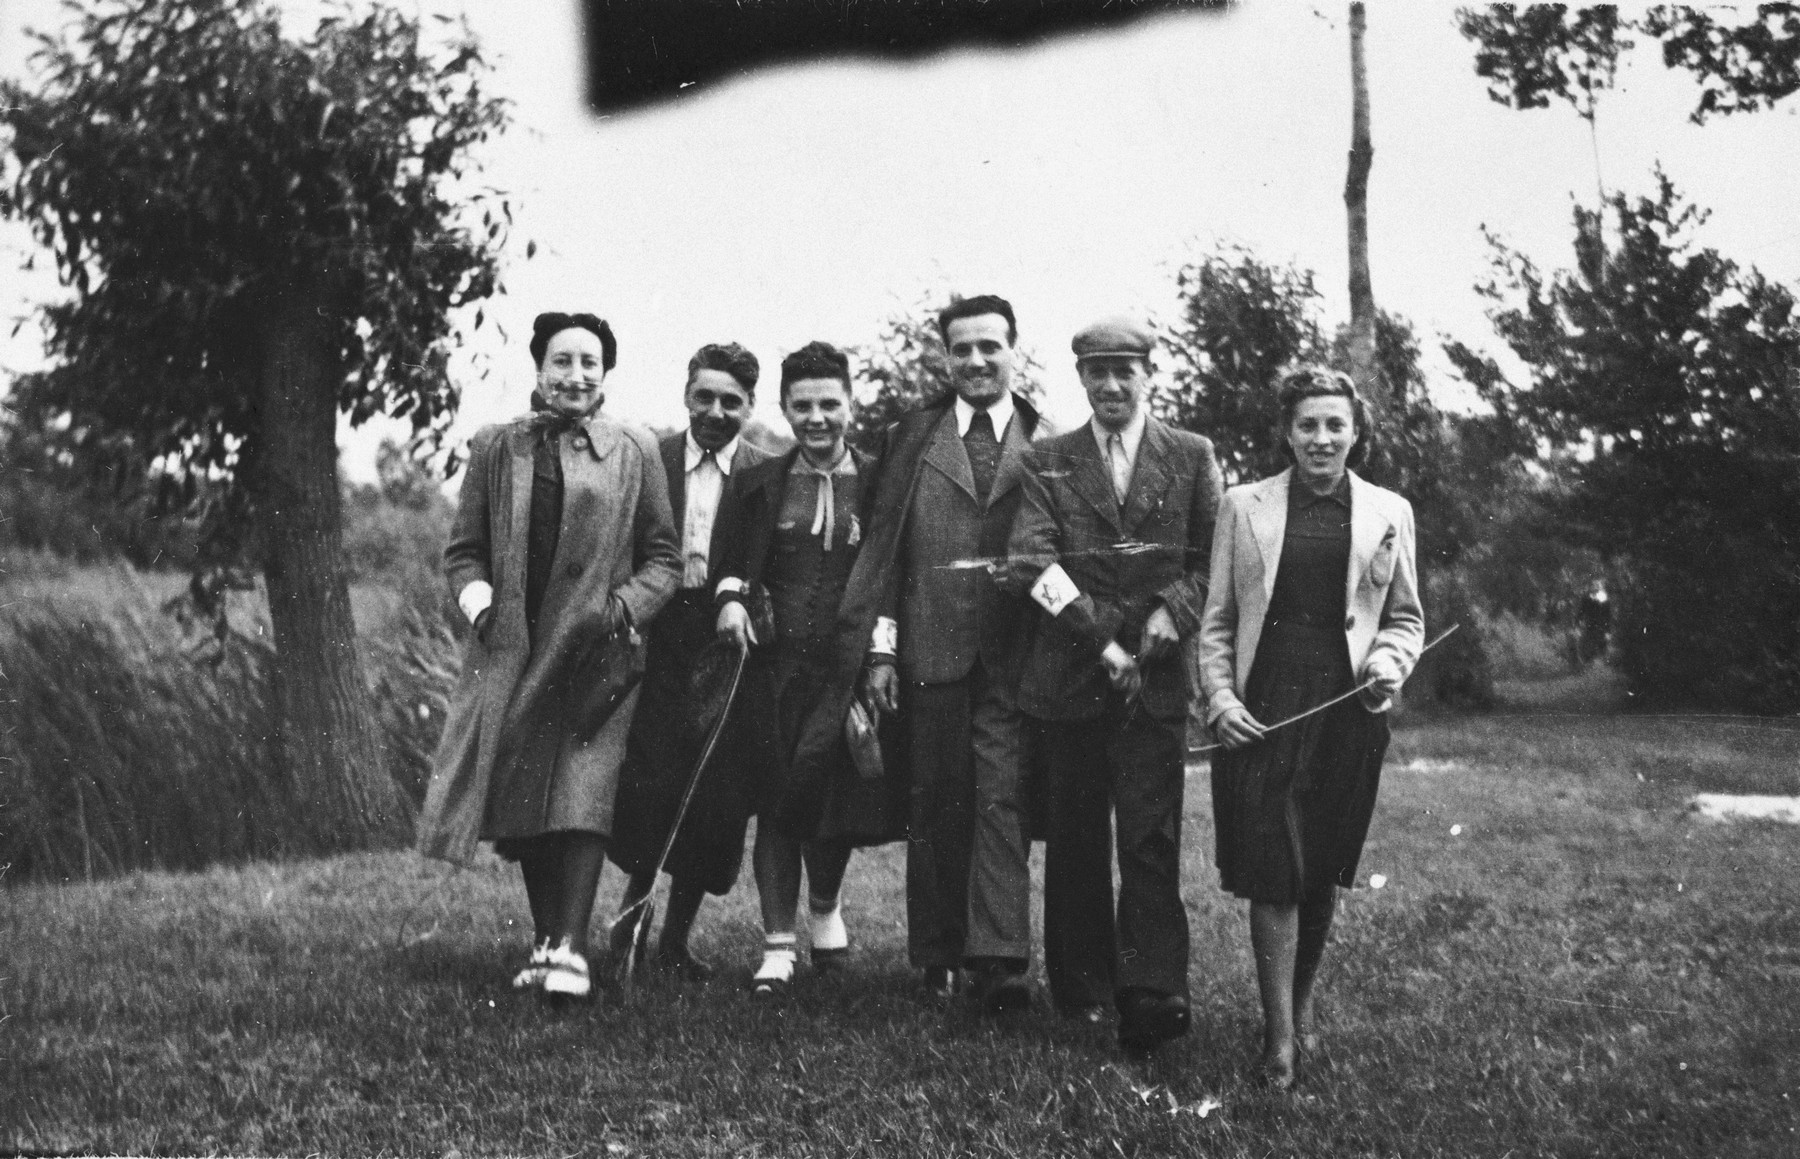 Members of the Jewish Council in Chmielnik journey to Wislica to attend a meeting.  Bluma Kleinhandler is pictured third from the right.